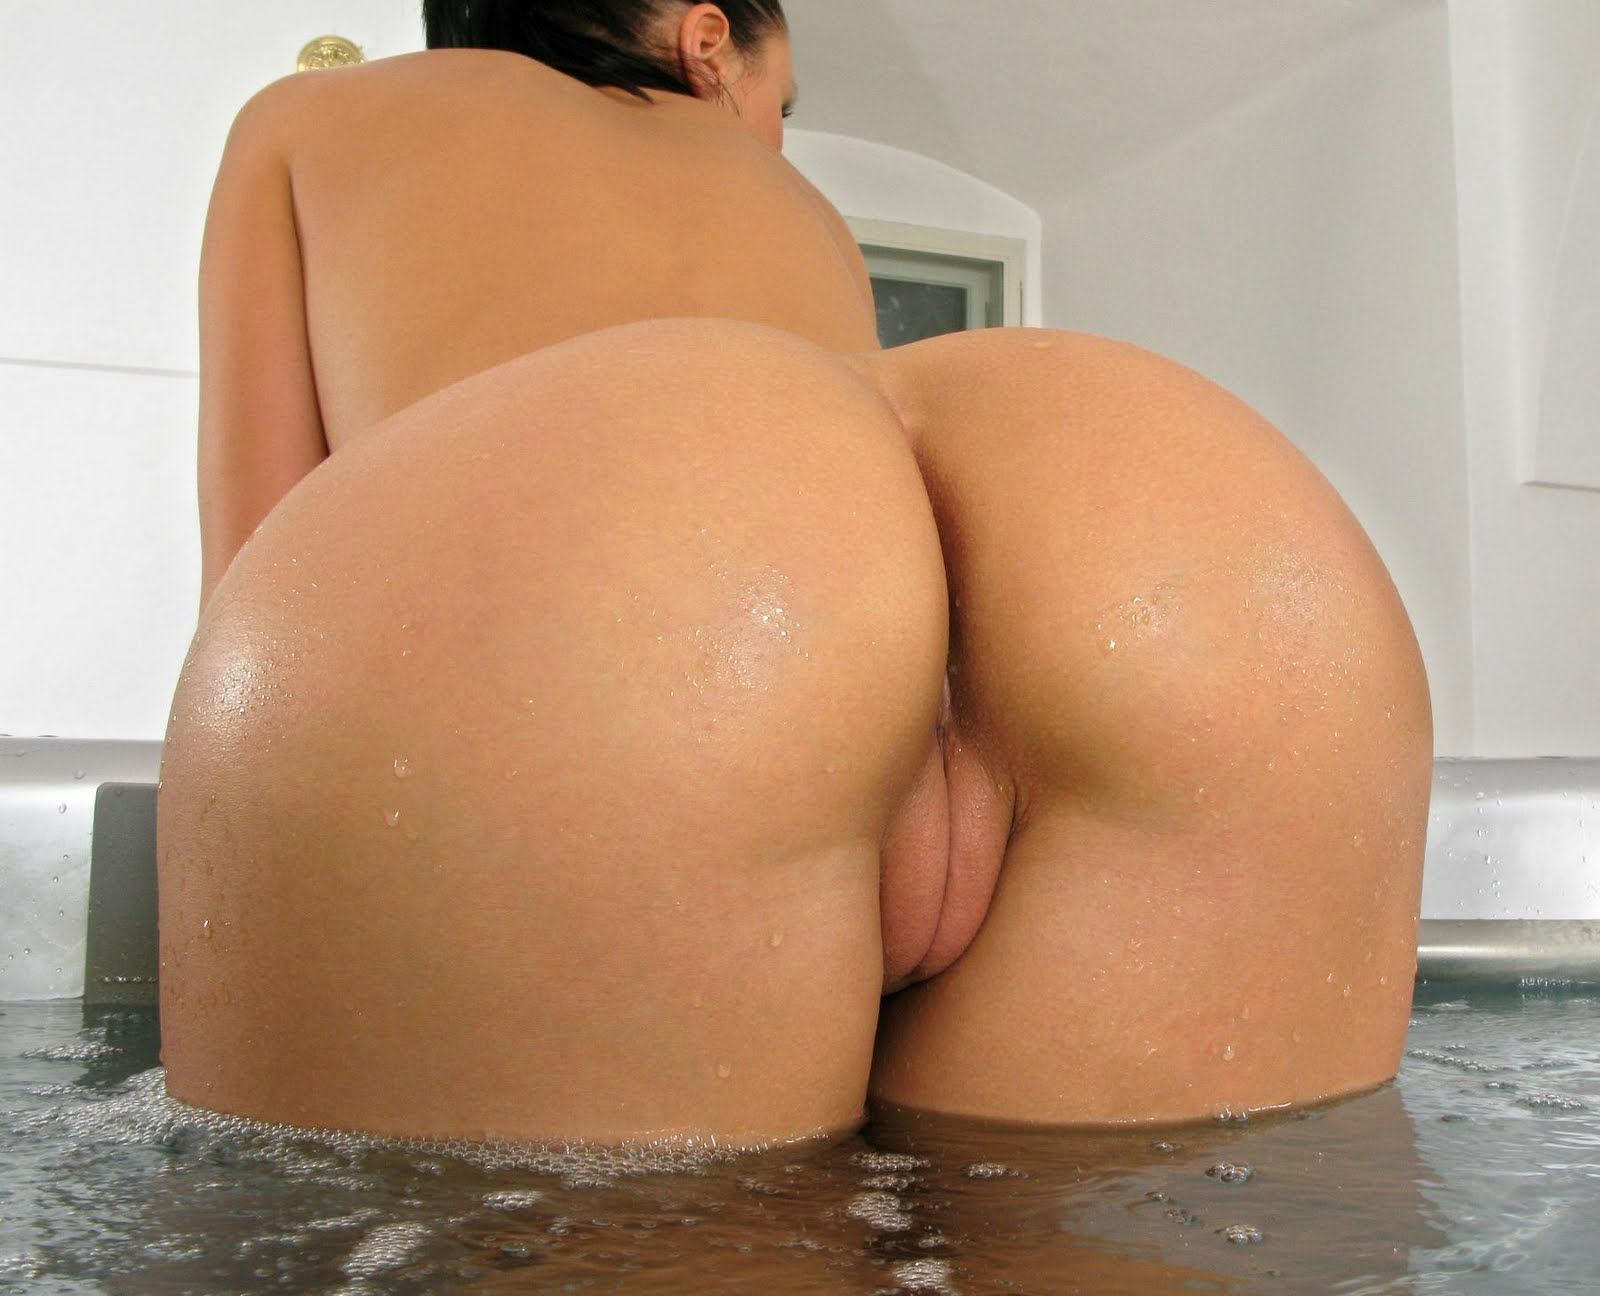 Hot naked female ass model